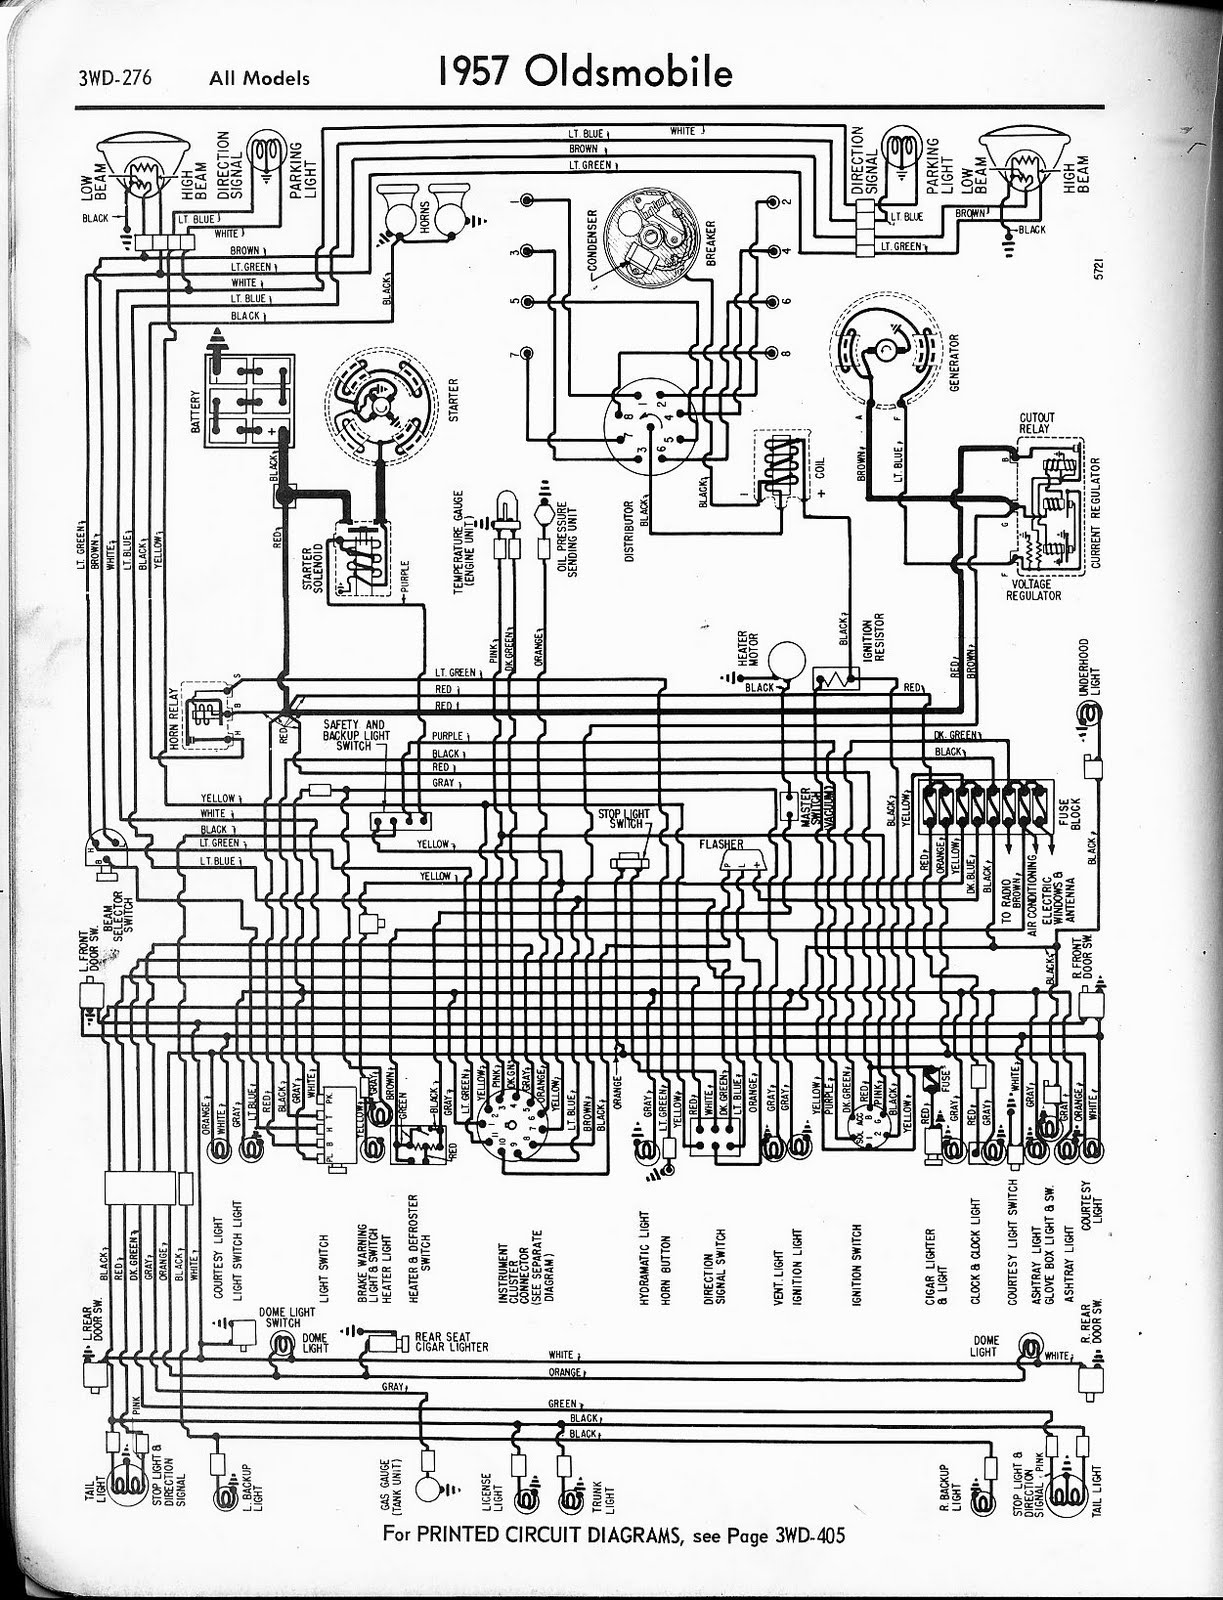 68 cutlass wiring diagram - scion radio wiring diagram for wiring diagram  schematics  wiring diagram schematics